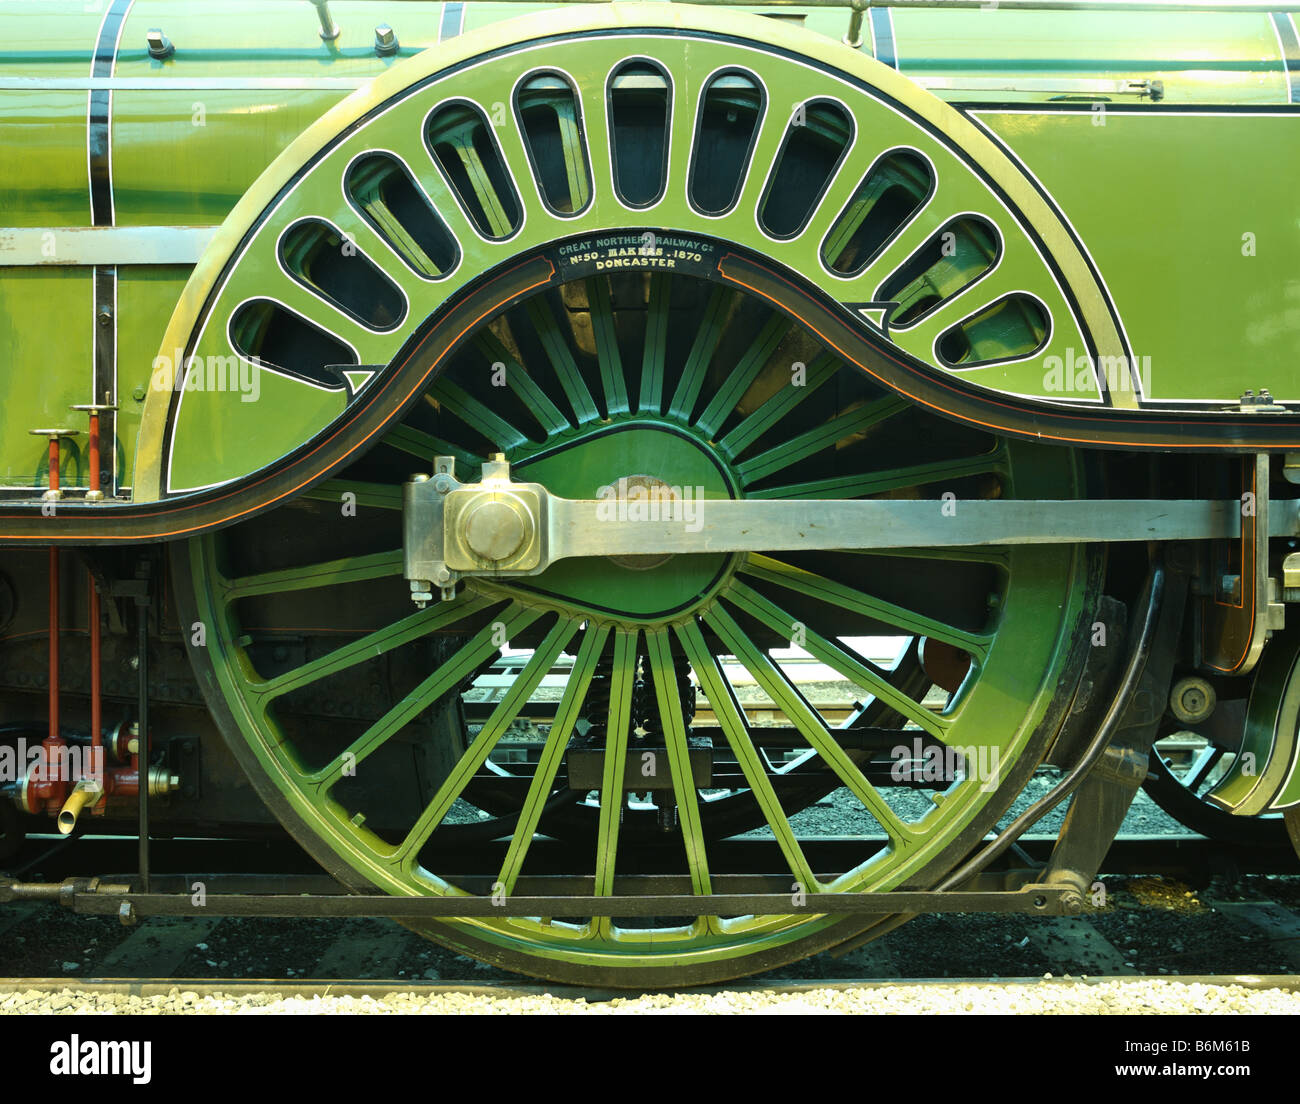 Steam Engine Wheel Driving : Examples of steam engines with asymmetrical driving wheels